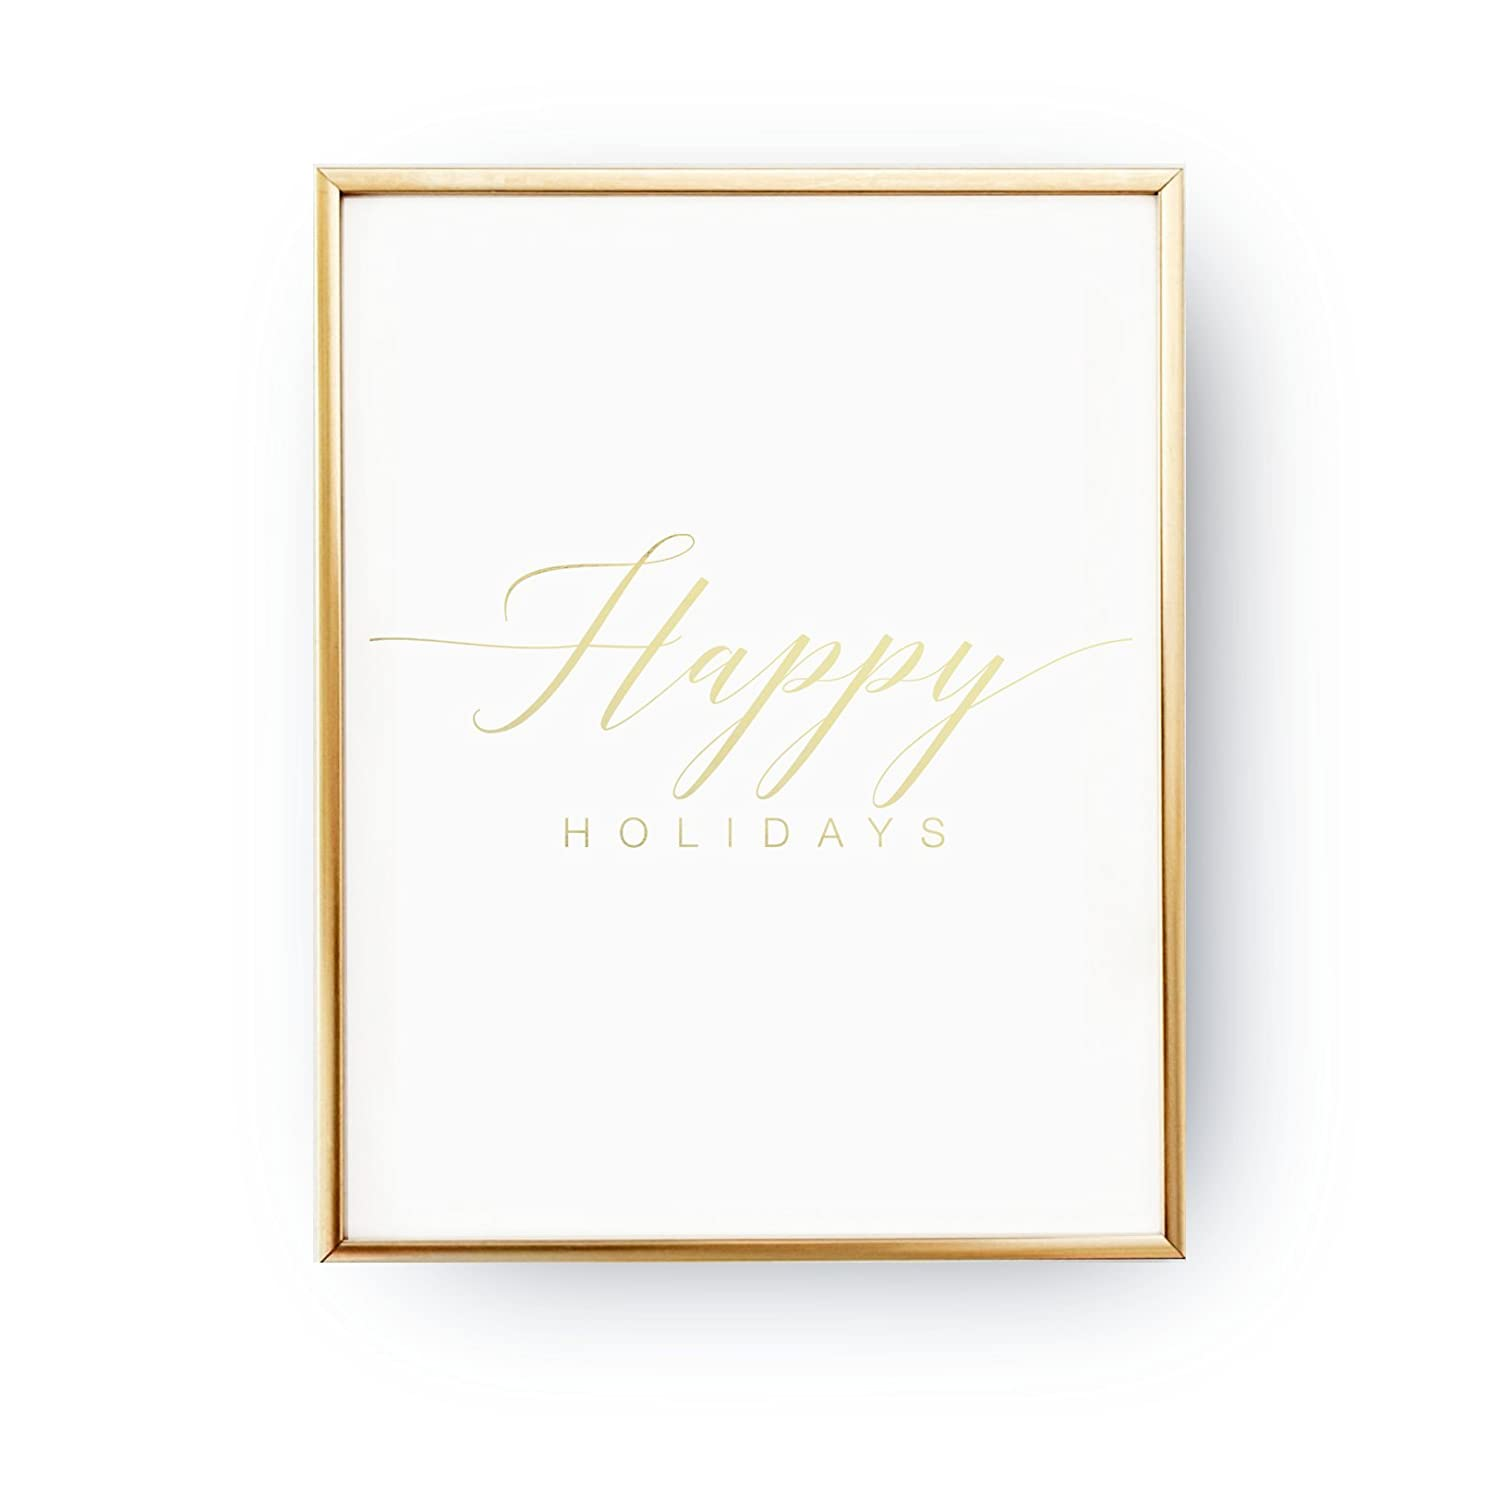 graphic regarding Happy Holidays Printable Card called : Satisfied Holiday seasons Print, Genuine Gold Foil, Christmas Artwork